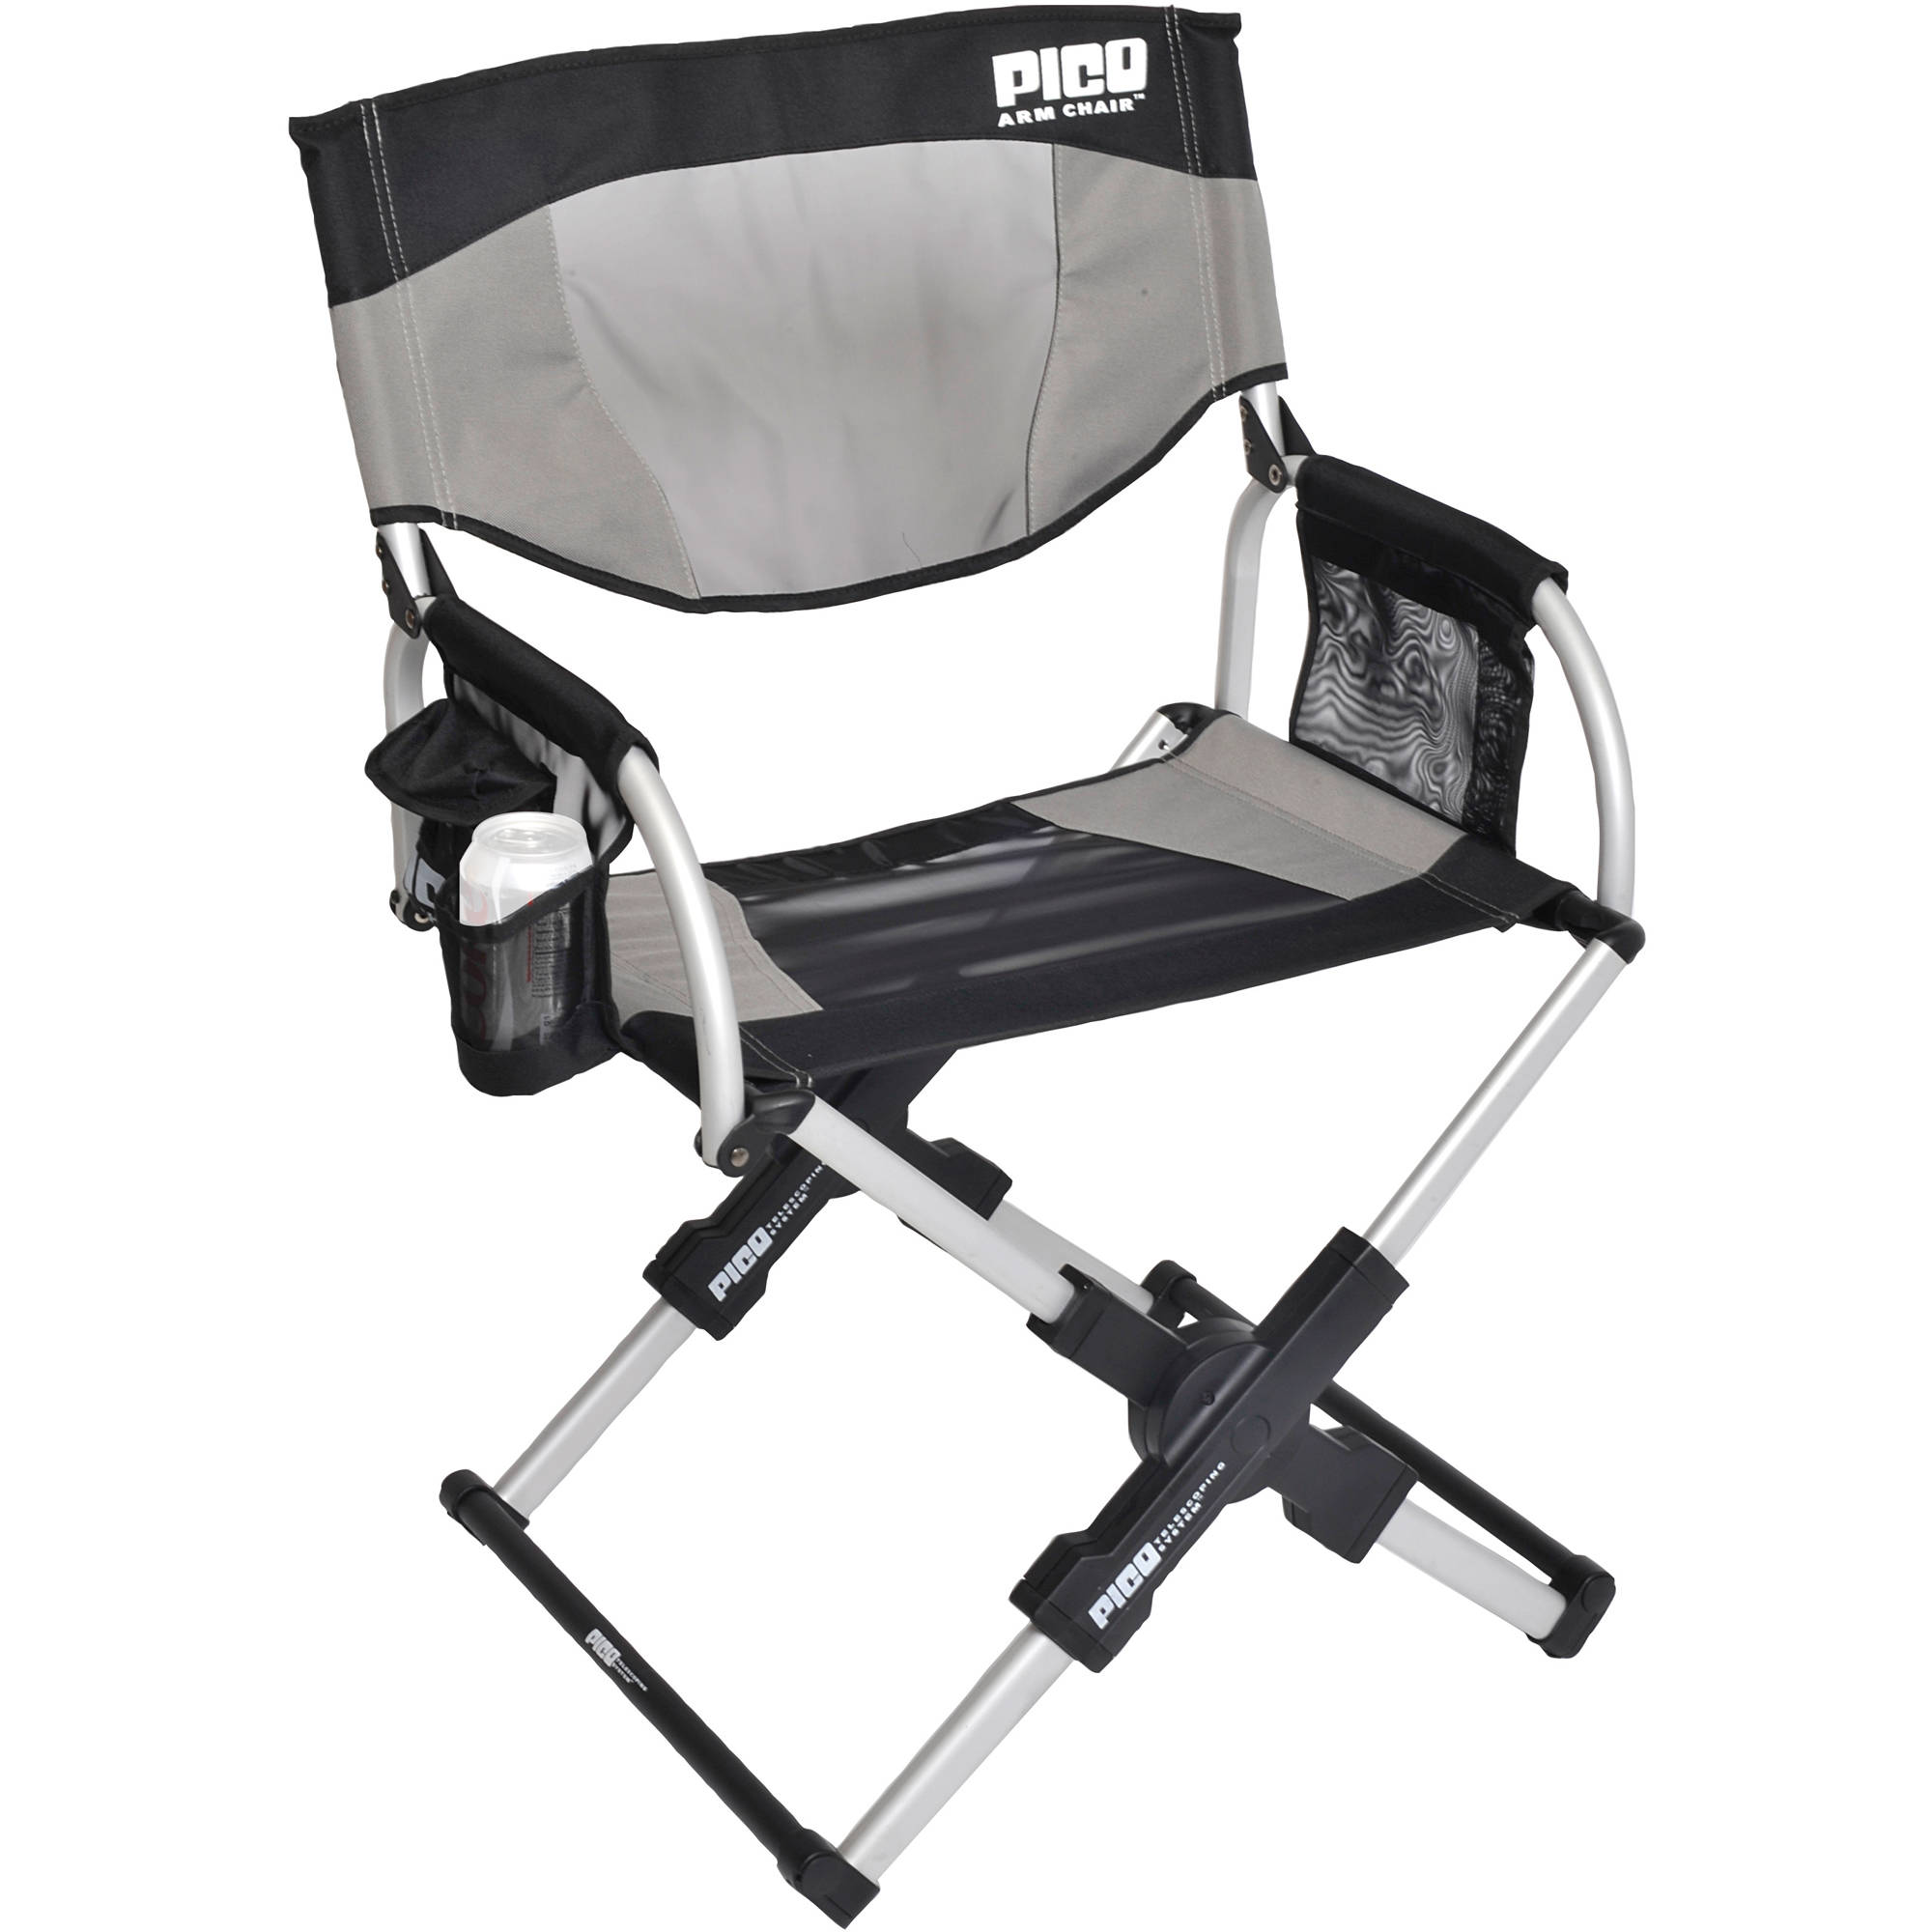 Gci outdoor pico arm chair